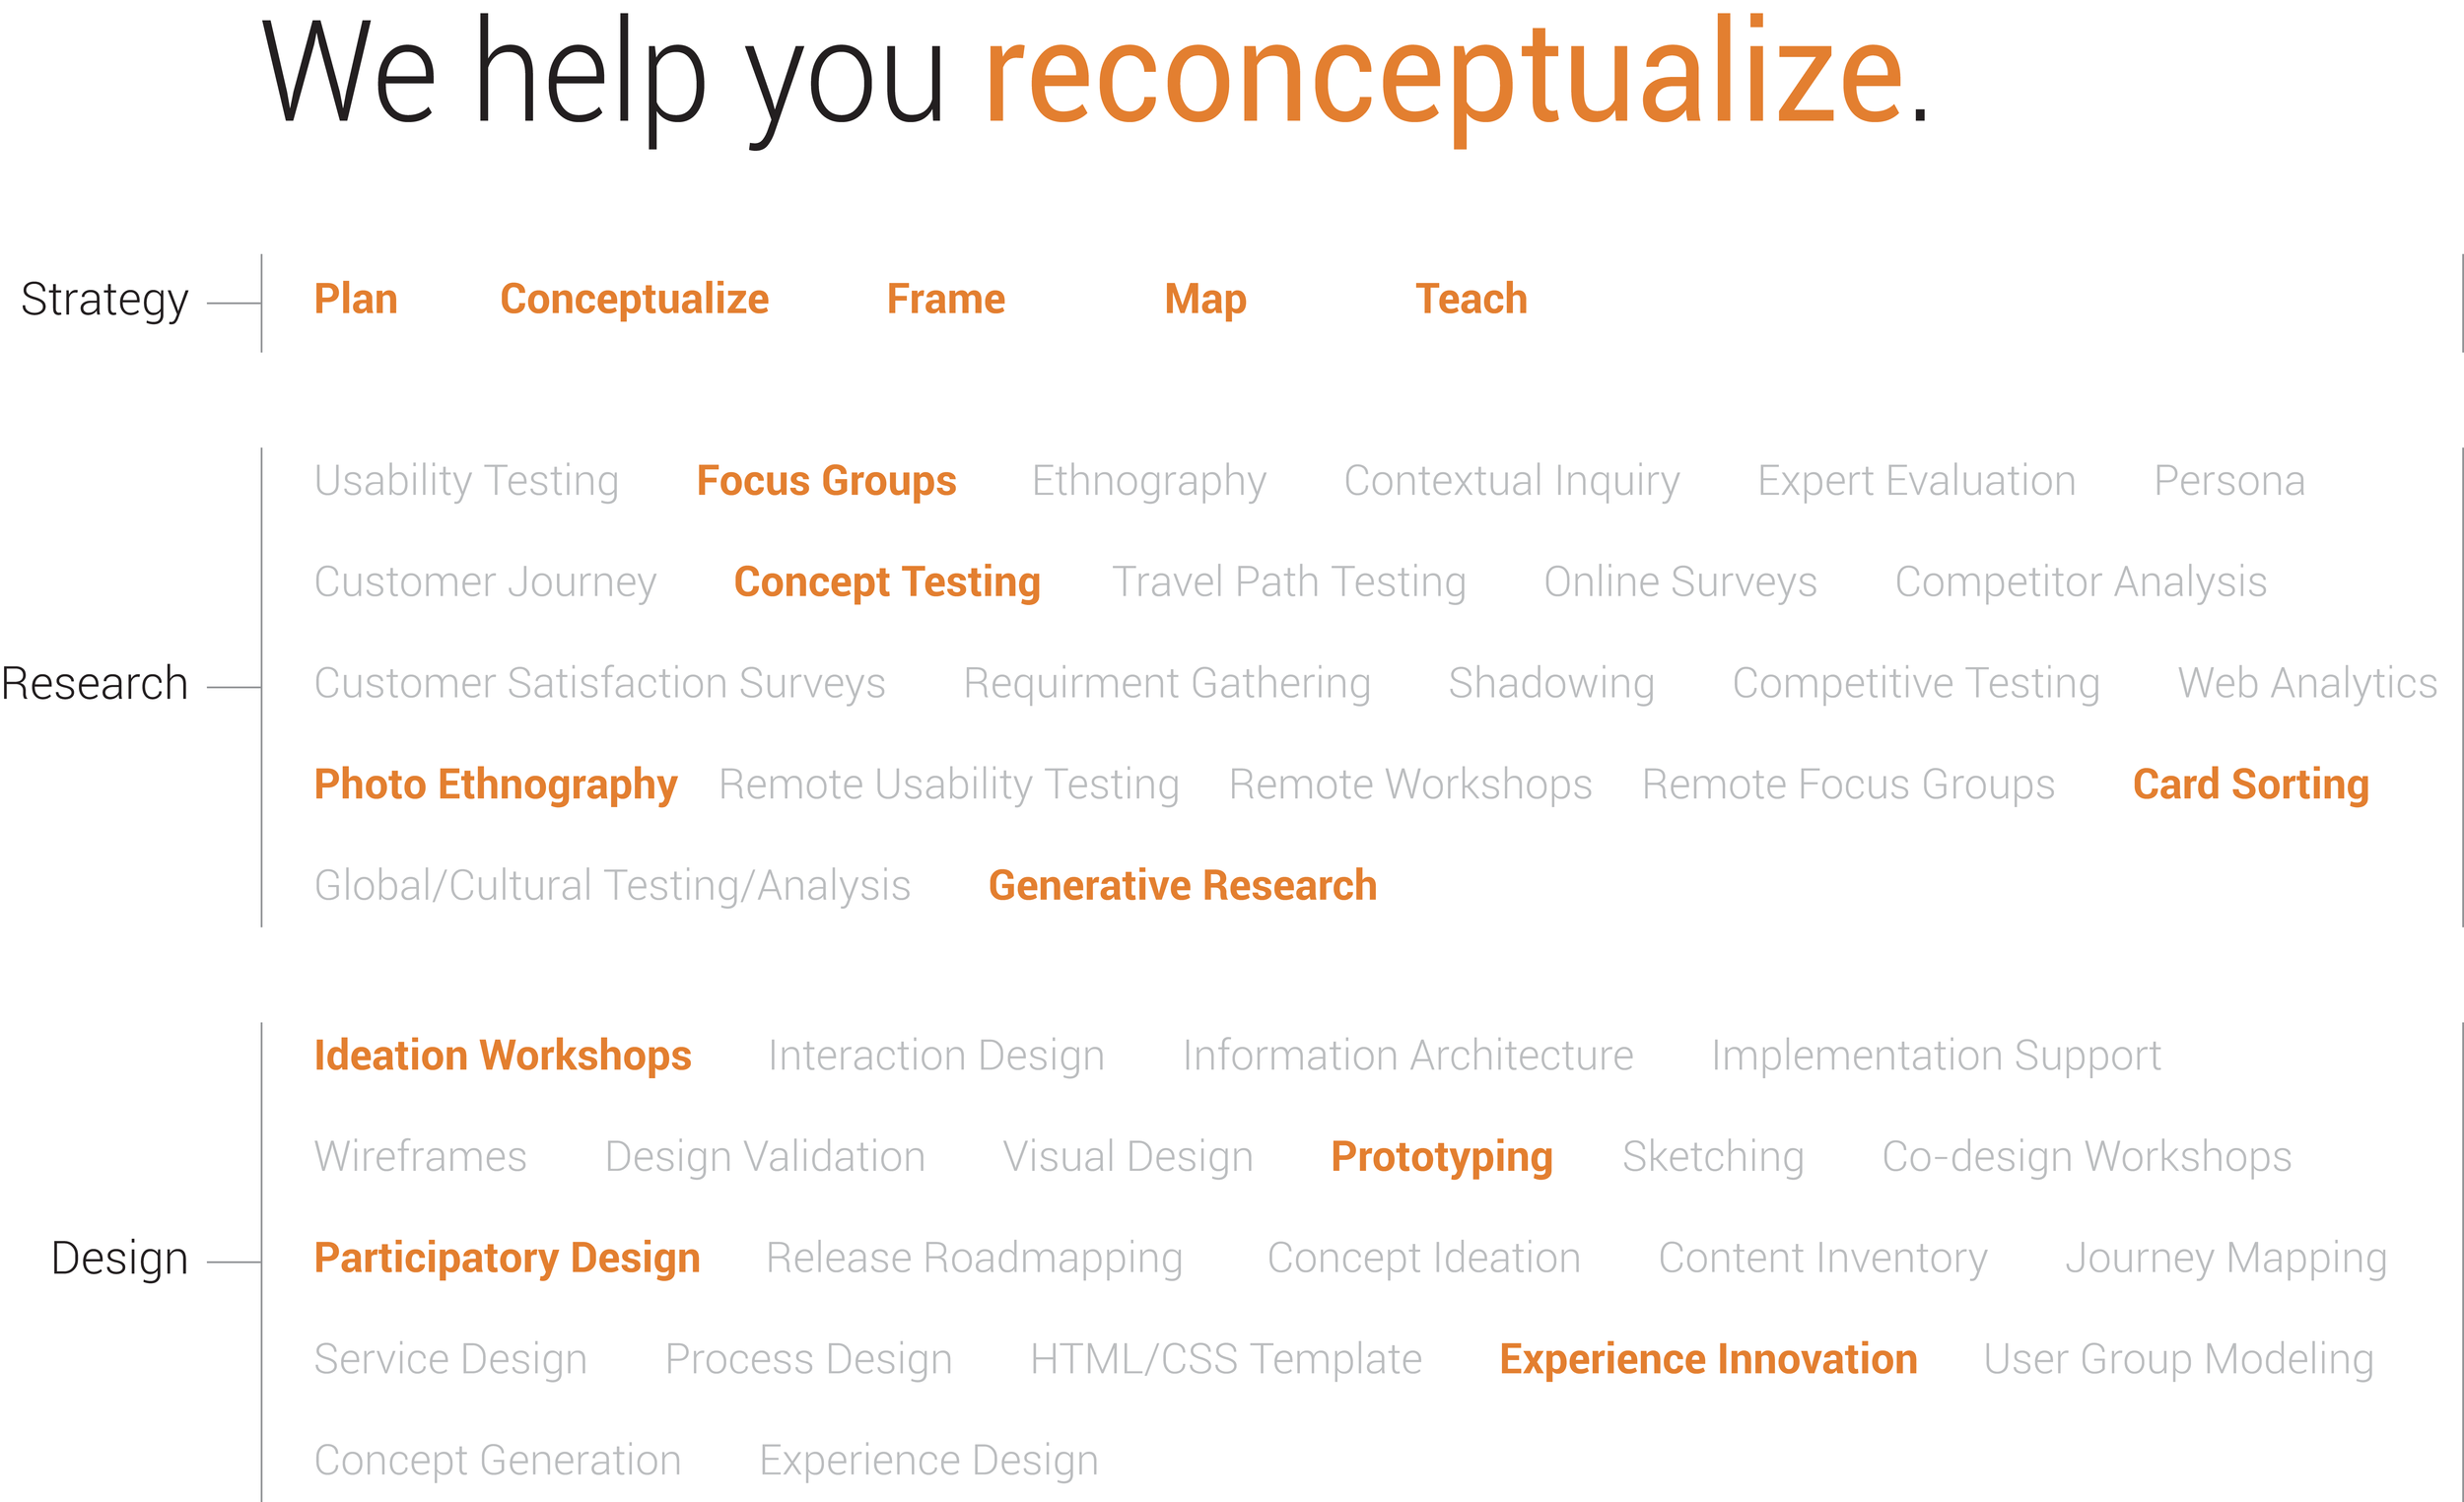 dynamic_strategy_page-practice_reconceptualize.png